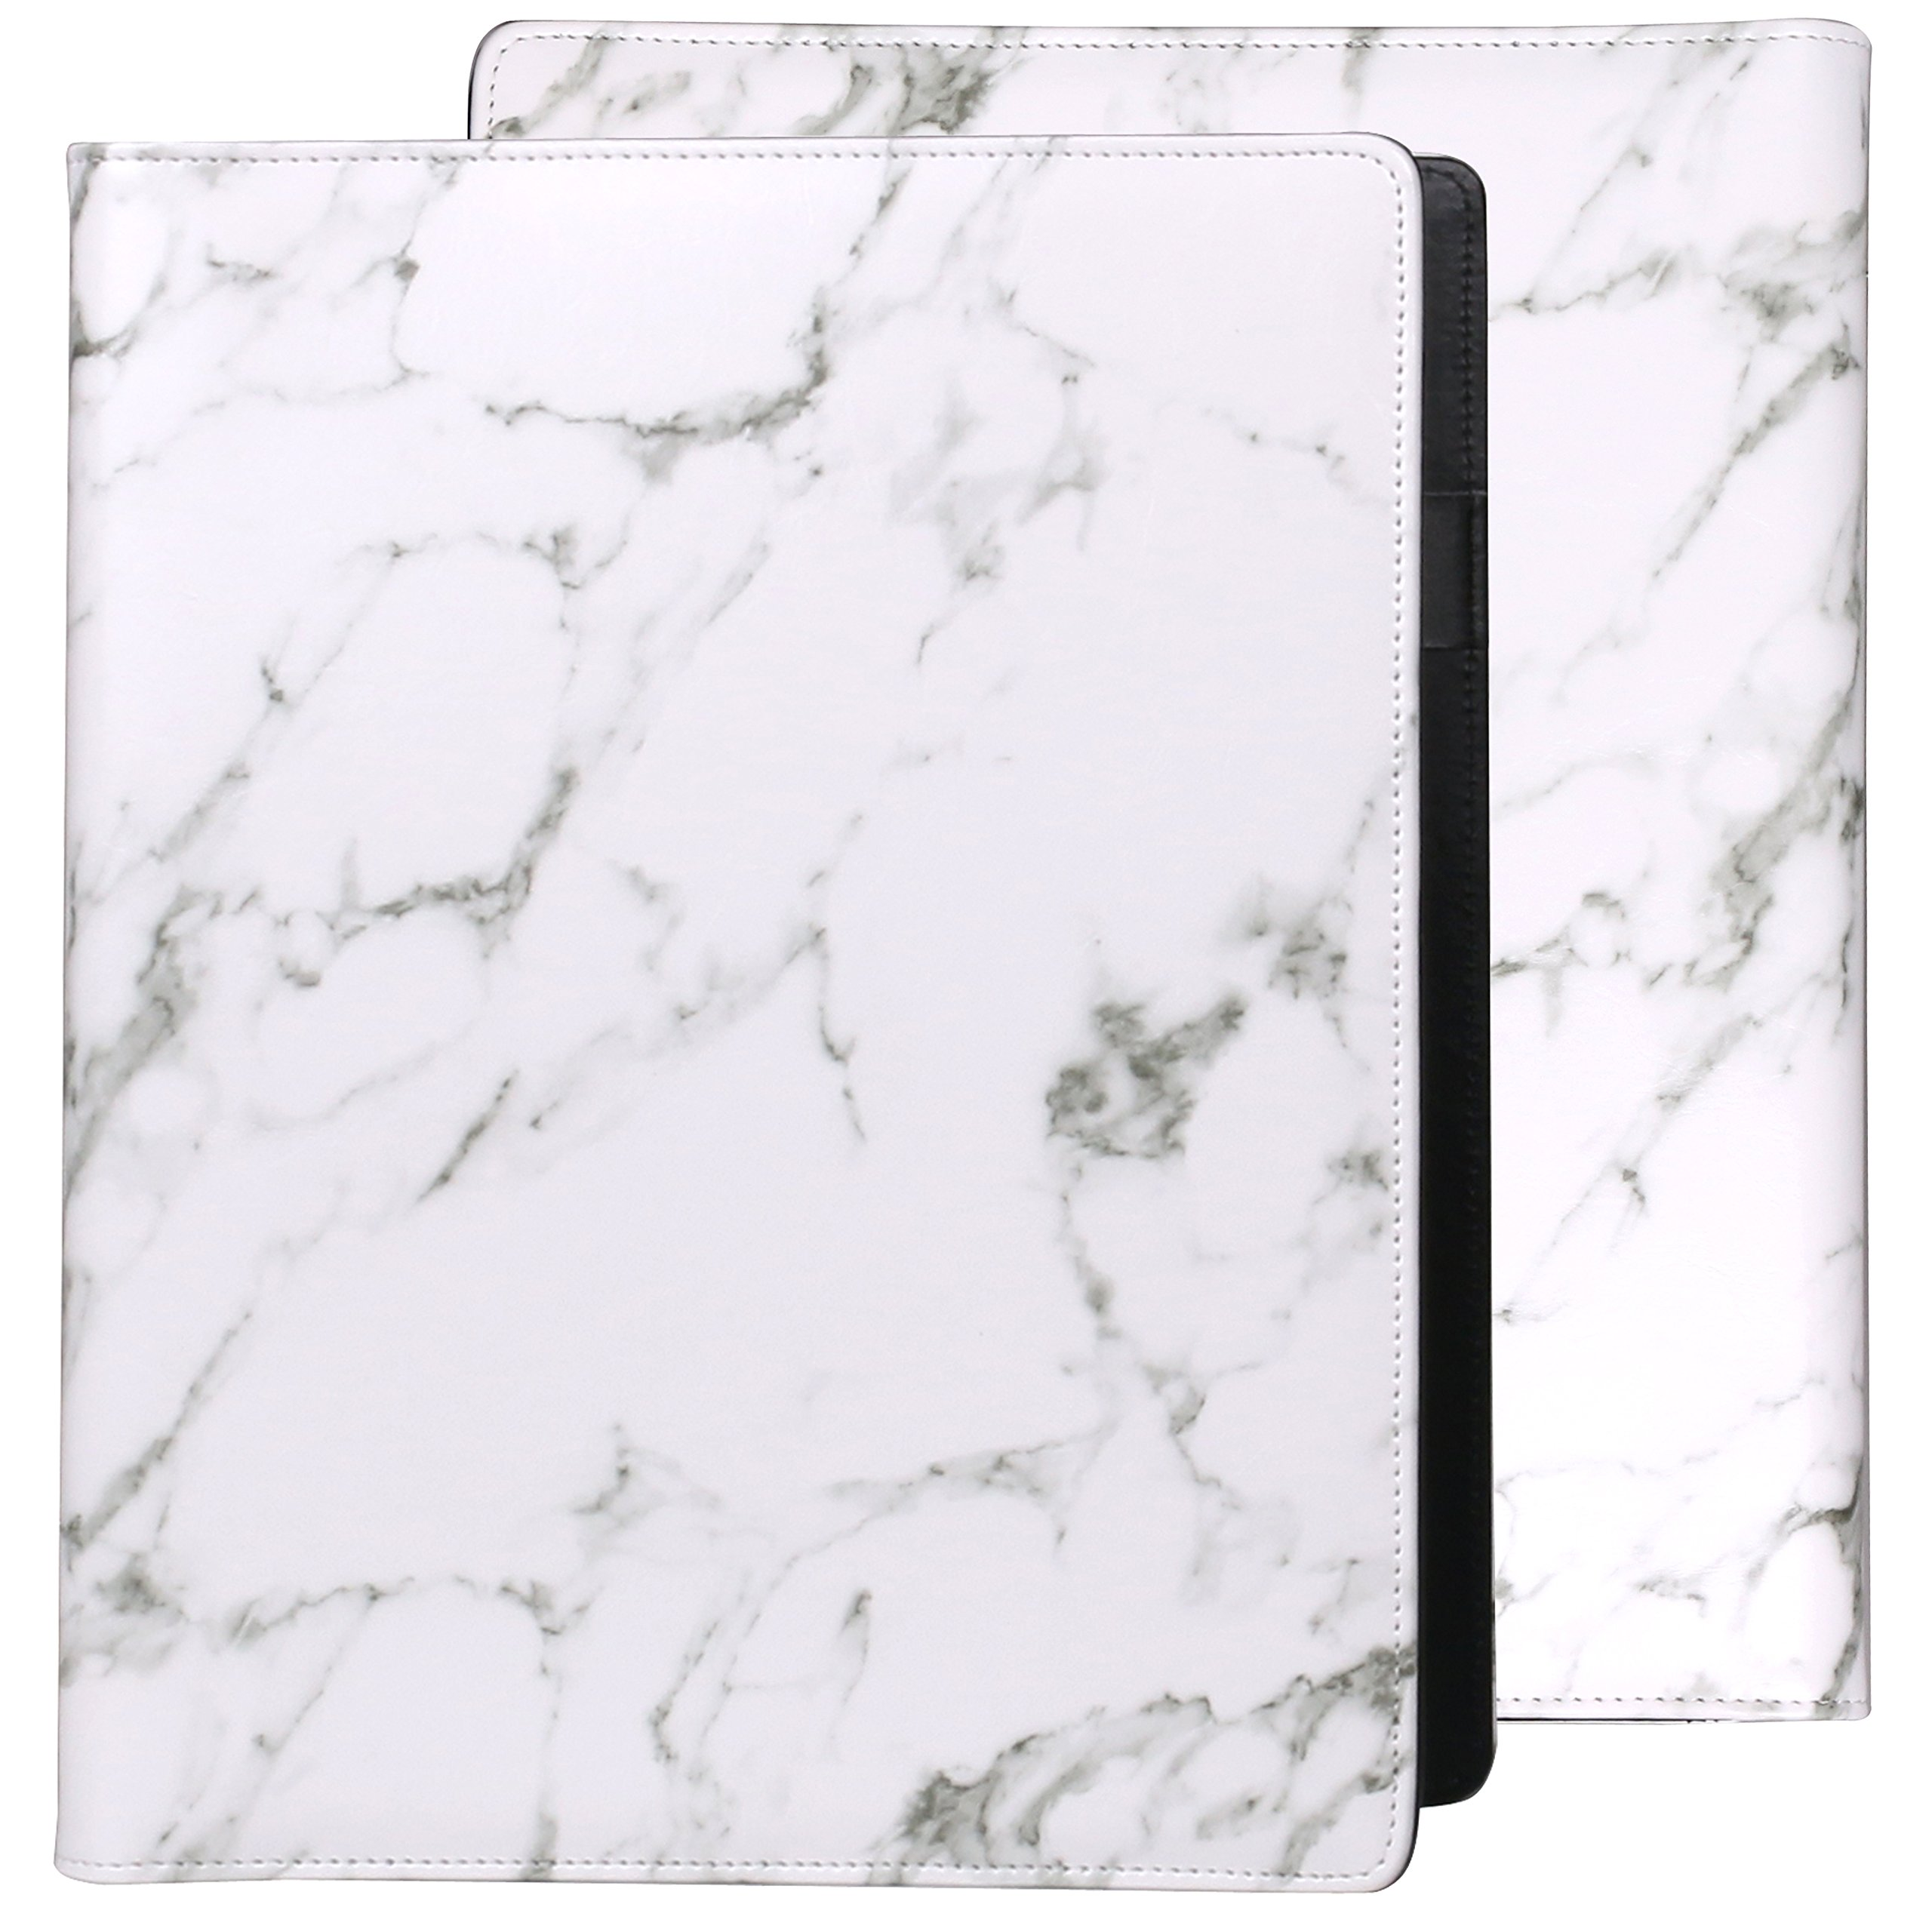 Z PLINRISE Luxury Marble Portfolio File Folder Document Resume Organizer,Padfolio File Holder Folders Letter Size,Standard 3 Ring Binder with Clipboard (Marble White)